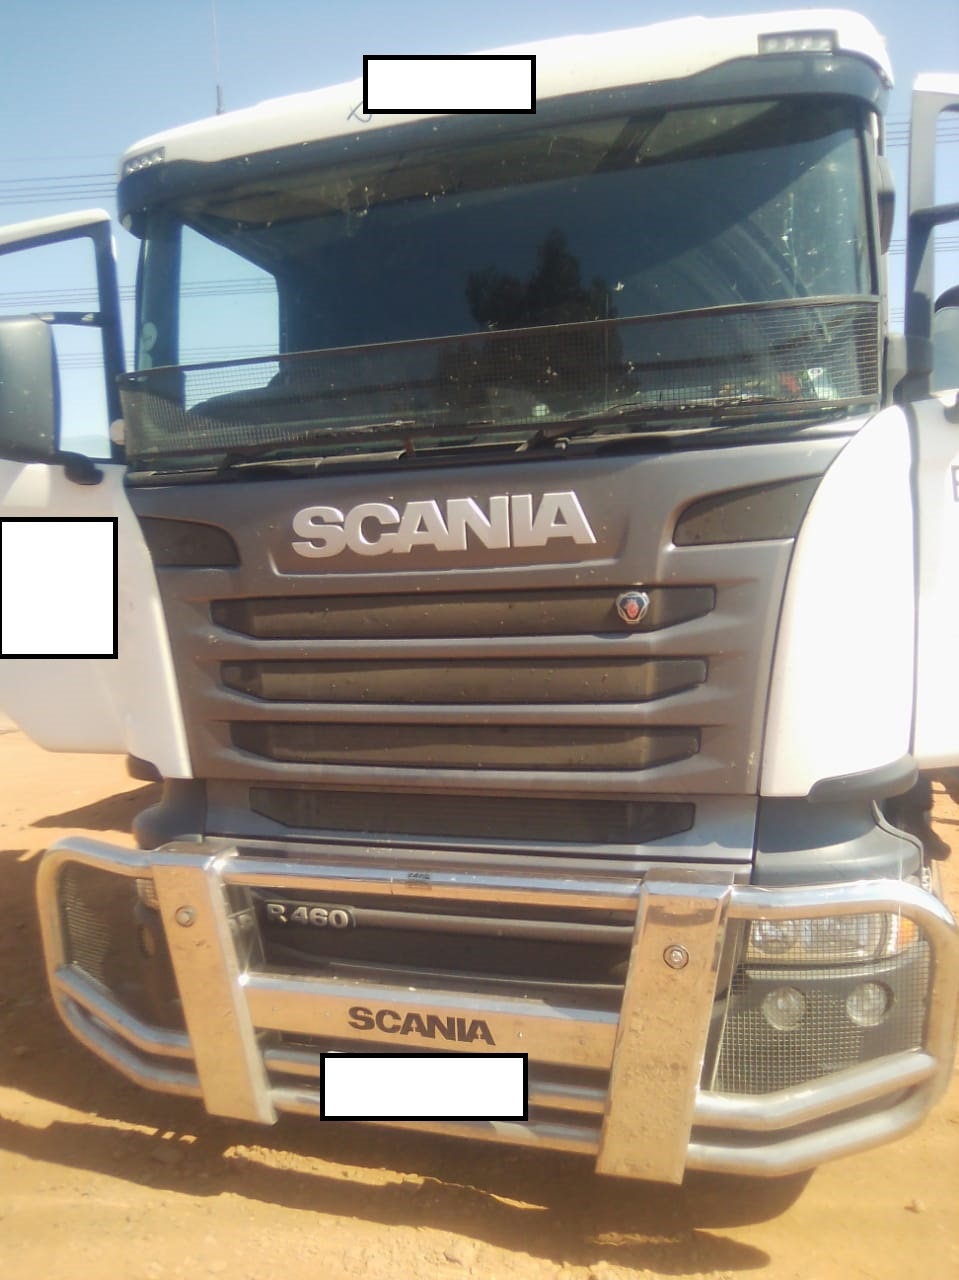 A hijacked truck carrying booze which was later recovered with the loot.